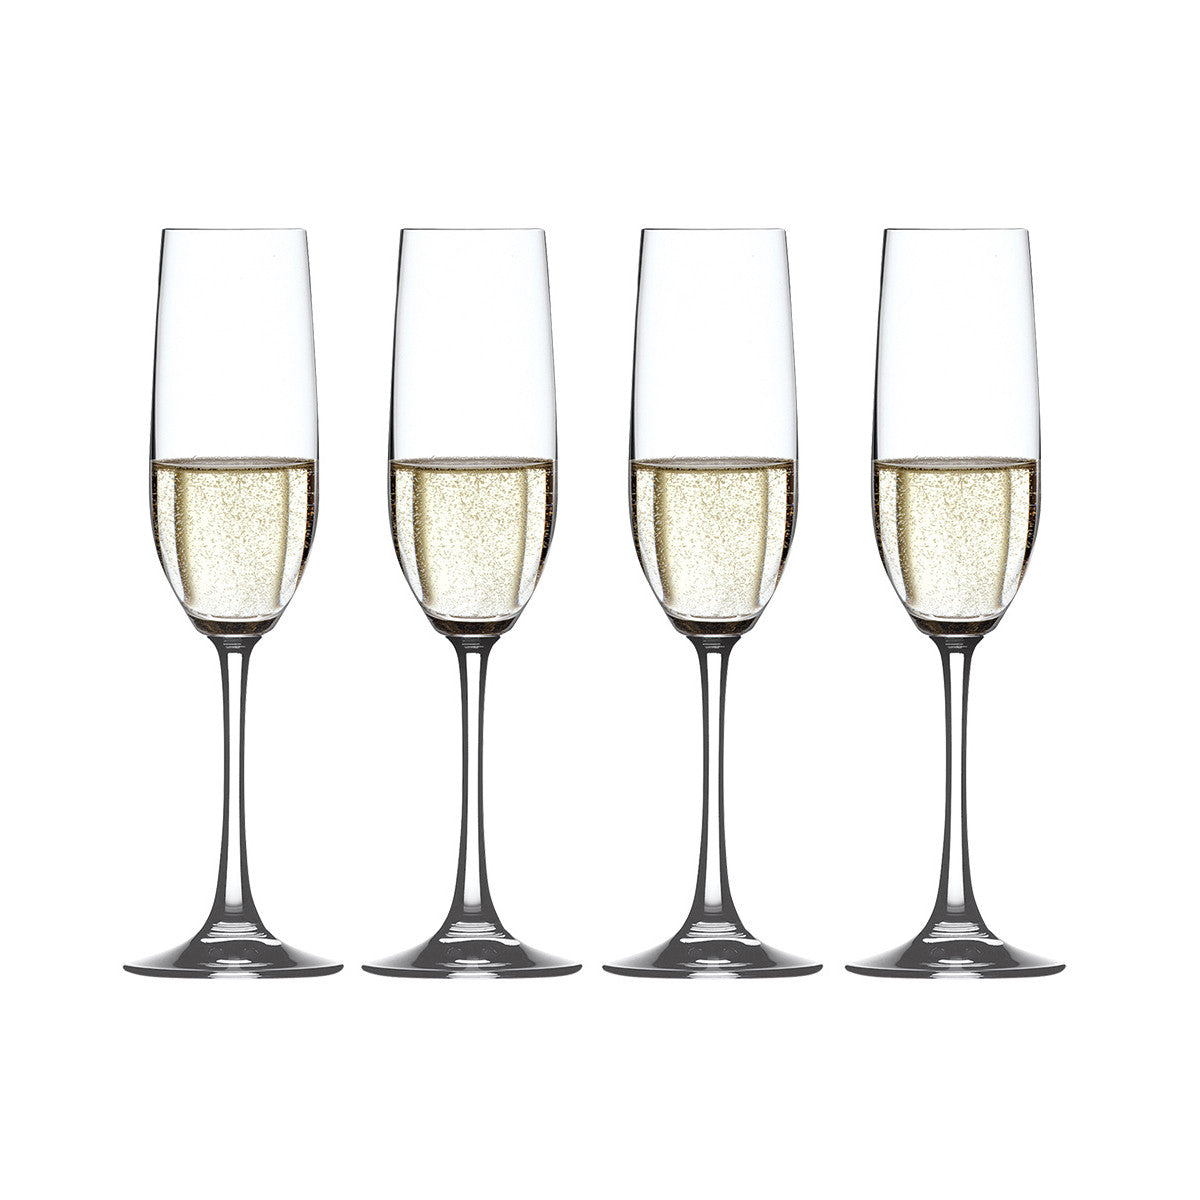 Vino Grande Champagne Glasses / Set 4